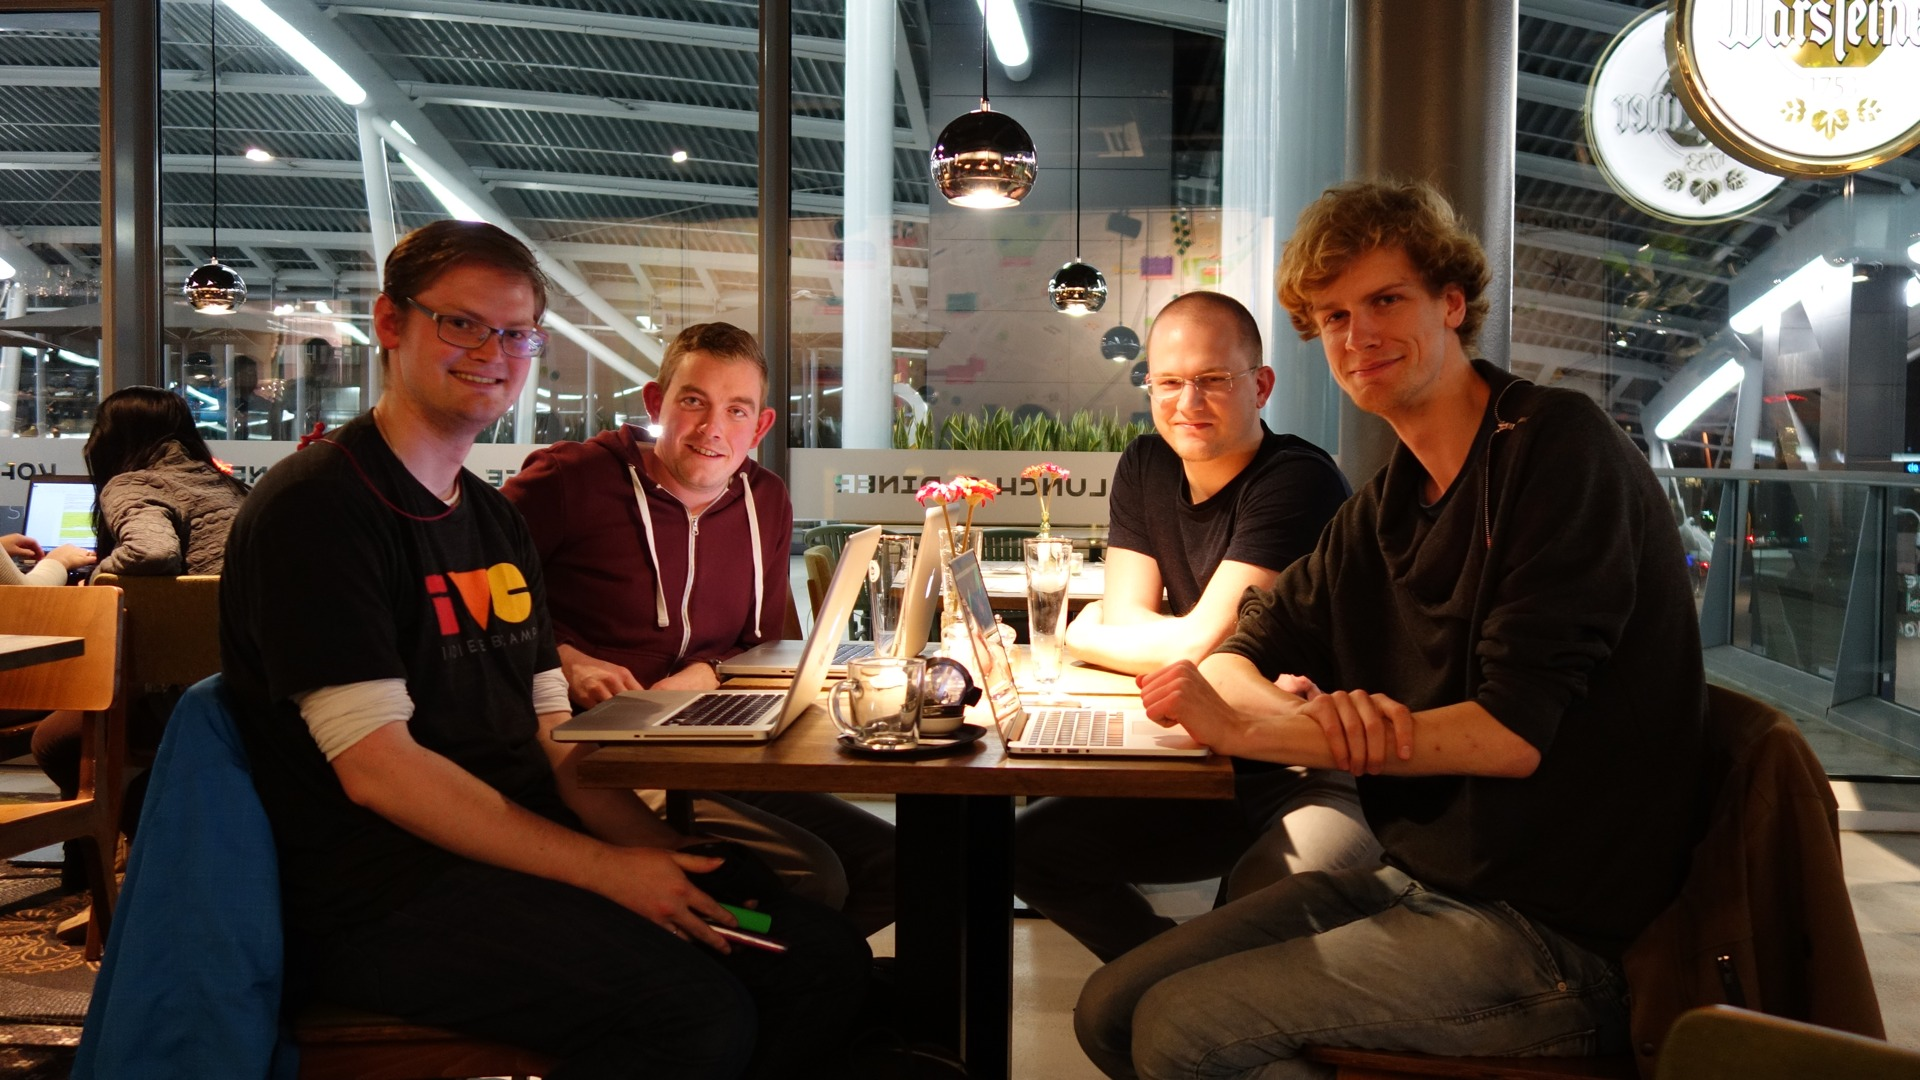 Photo of Homebrew Website Club the Netherlands with Martijn, Jeroen, Jesse, and Sebastiaan